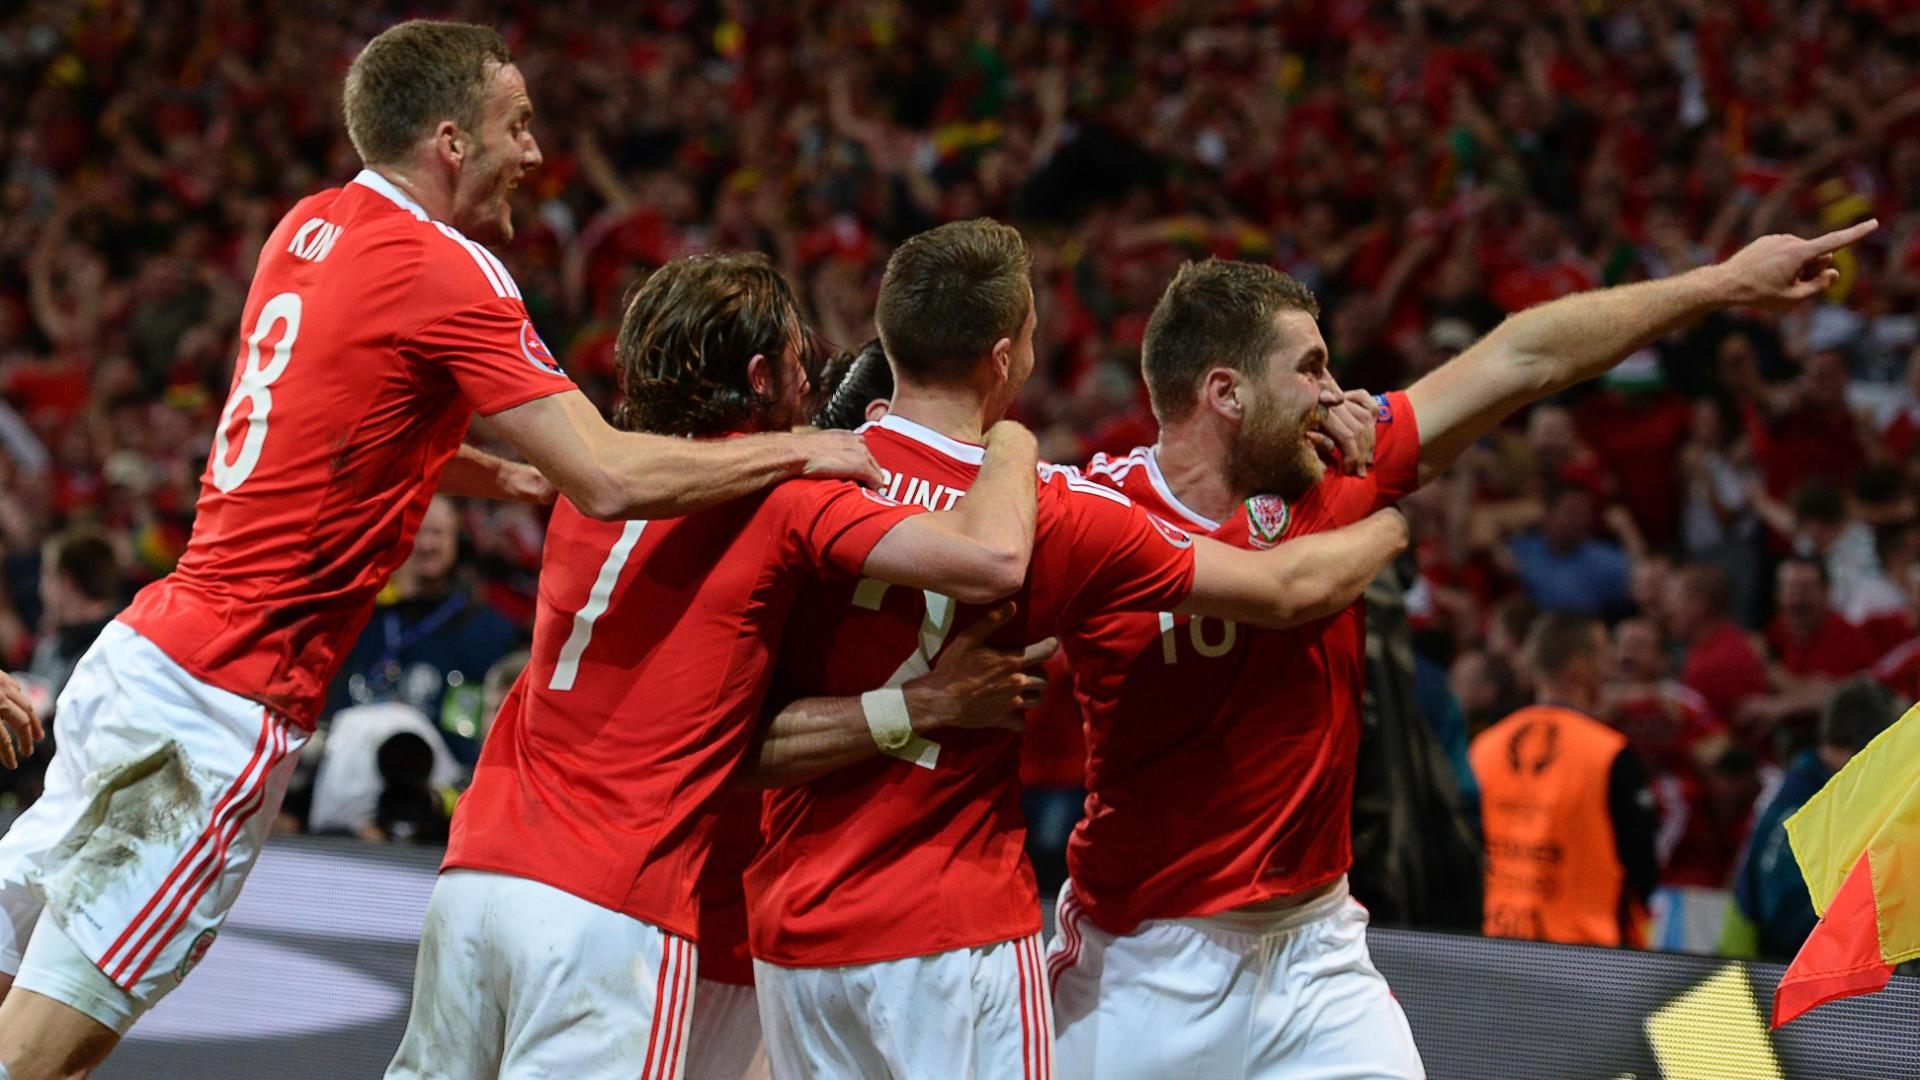 Unified Wales knock out Belgium to reach Euro 2016 semifinals